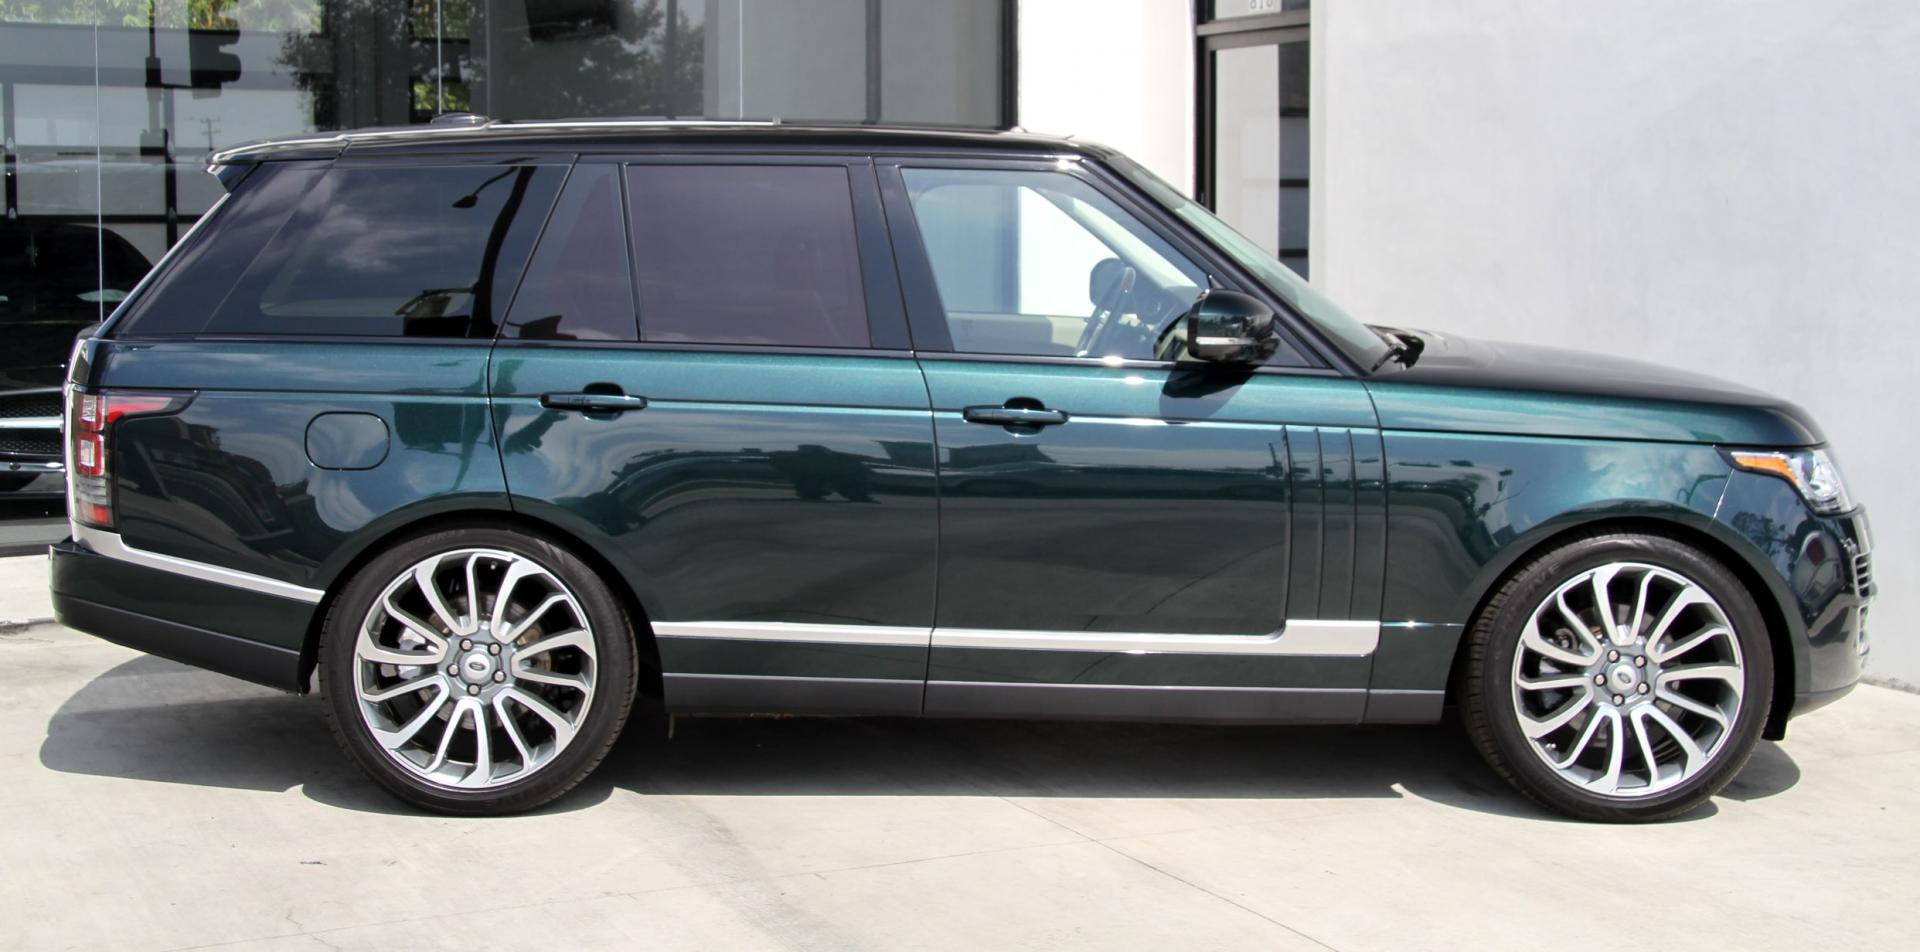 2014 Land Rover Range Rover Hse Stock 5810 For Sale Near